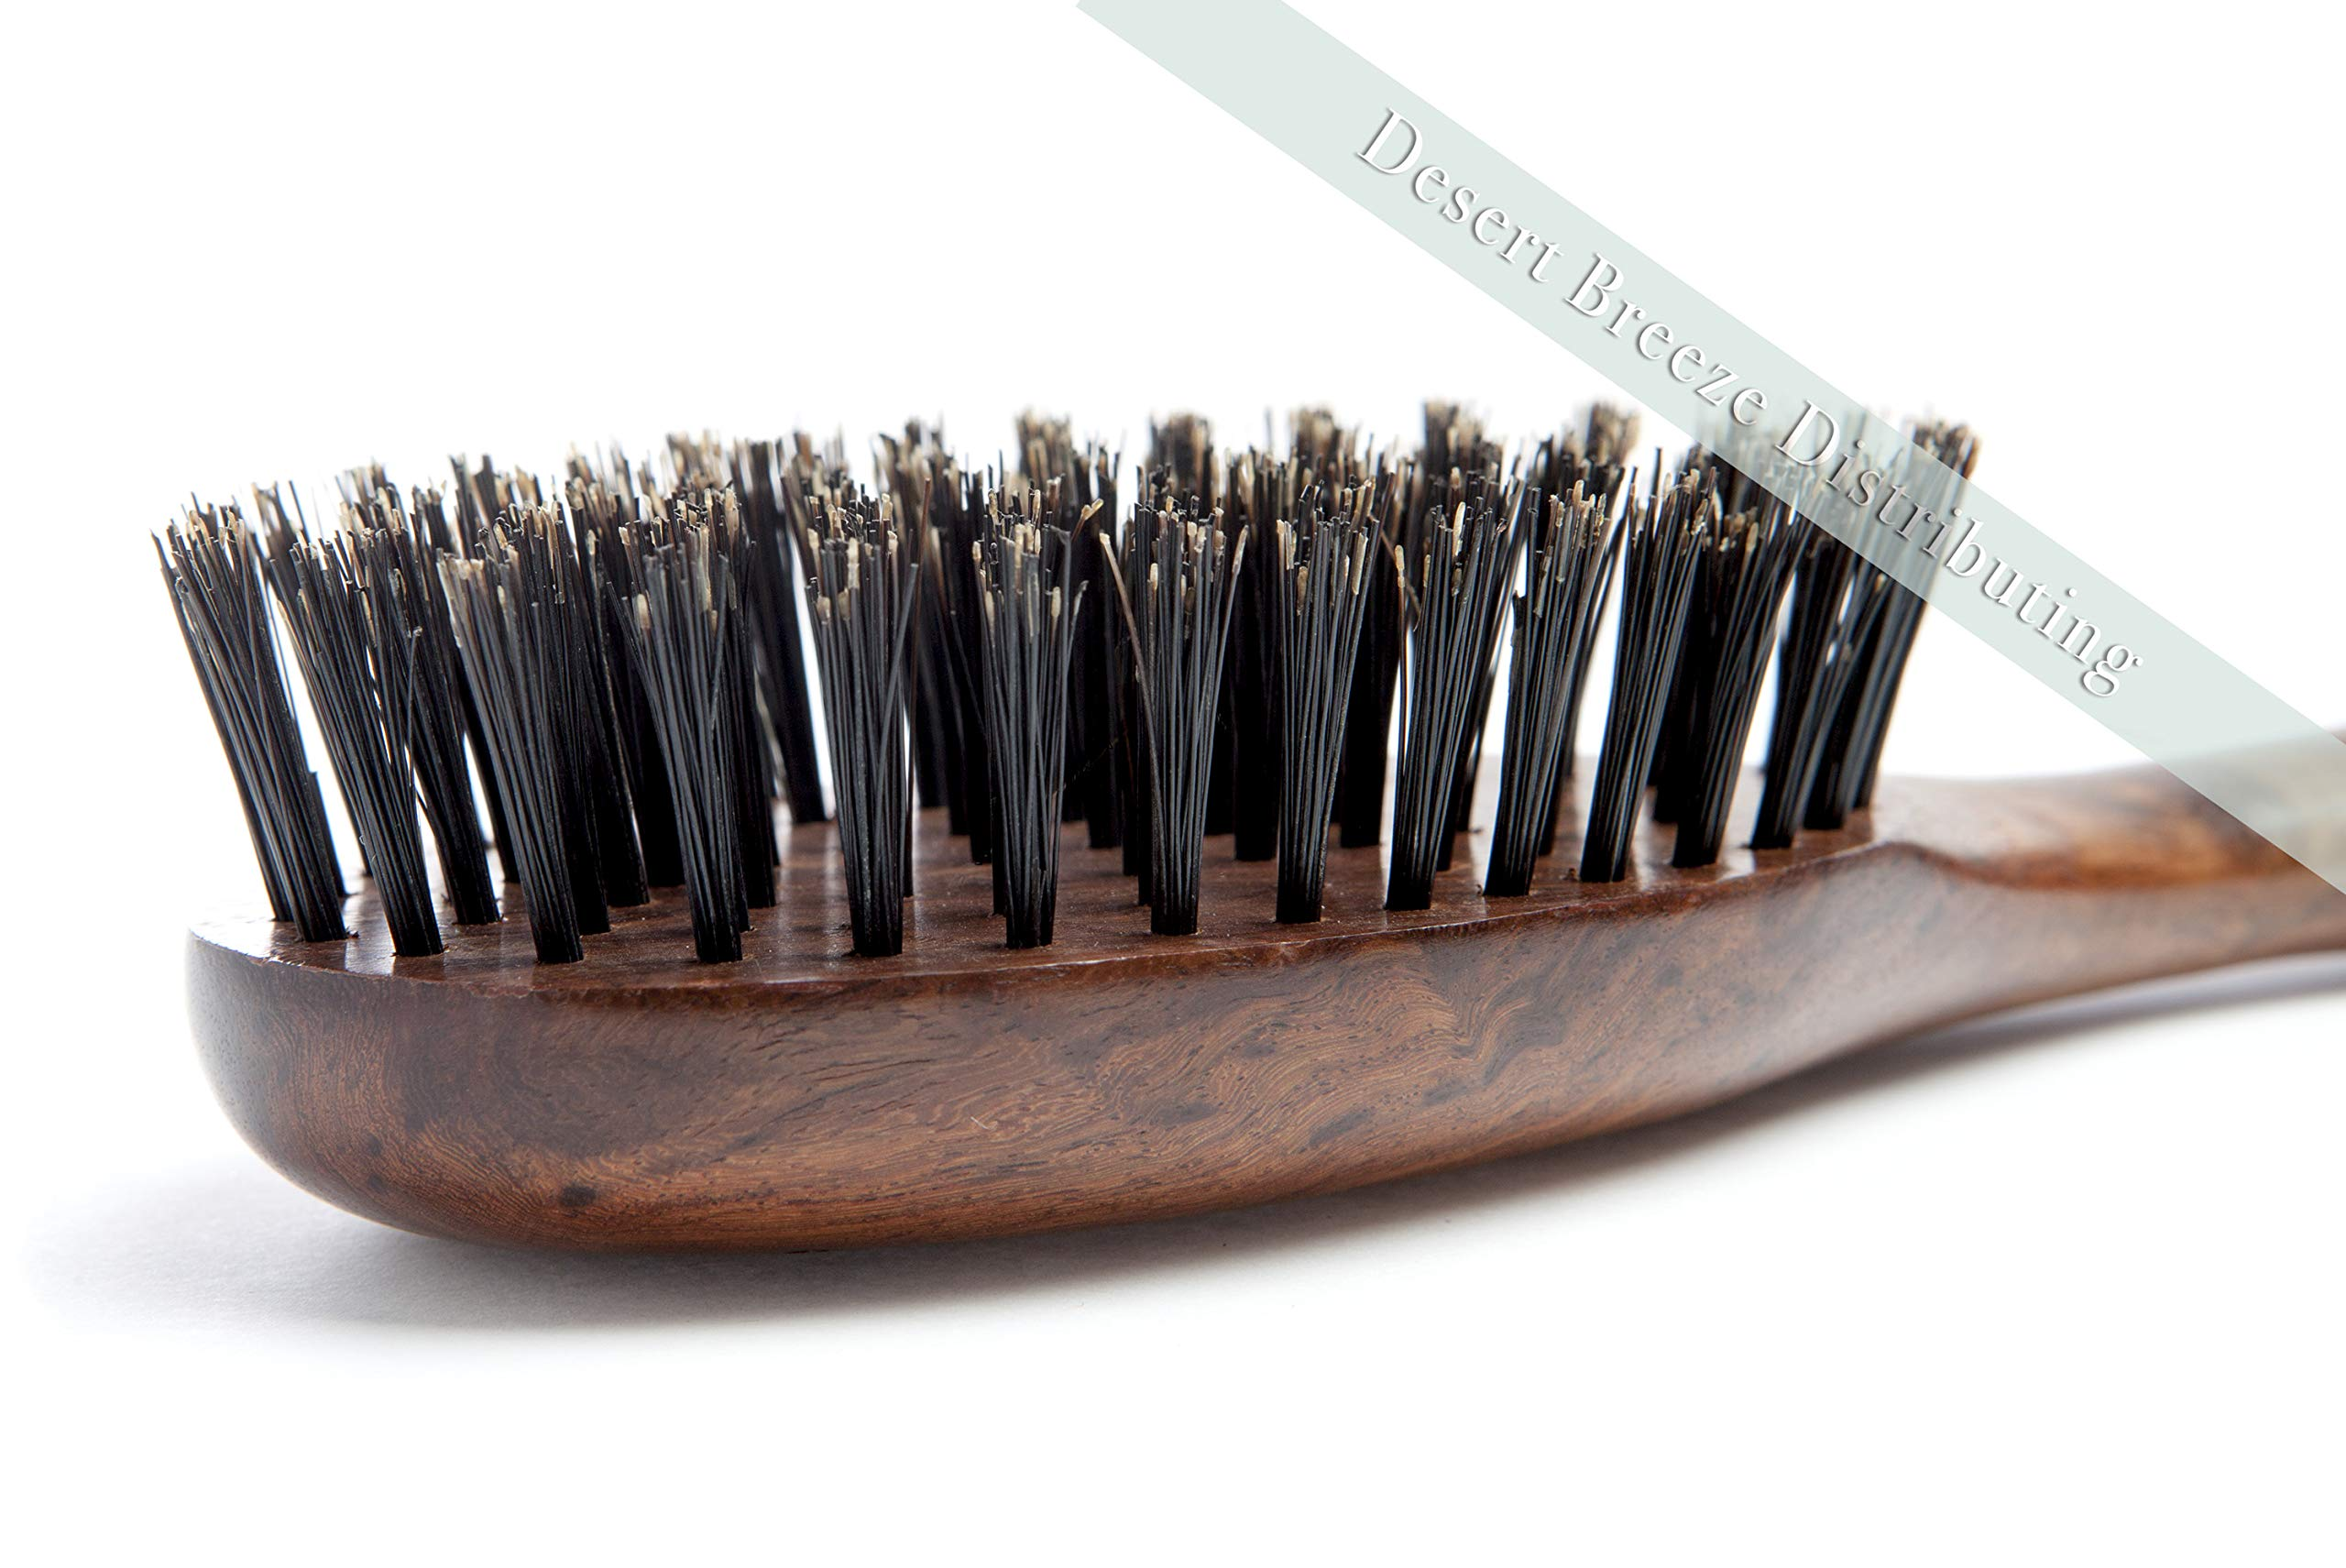 100% Pure Wild Boar Bristle Hair Brush, Calcutta Max for Thick or Long Hair, Gentle, Extra Stiff Natural Bristles, Hand Finished Indian Rosewood Handle, Tufted in USA, by Desert Breeze Distributing by Desert Breeze Distributing (Image #3)